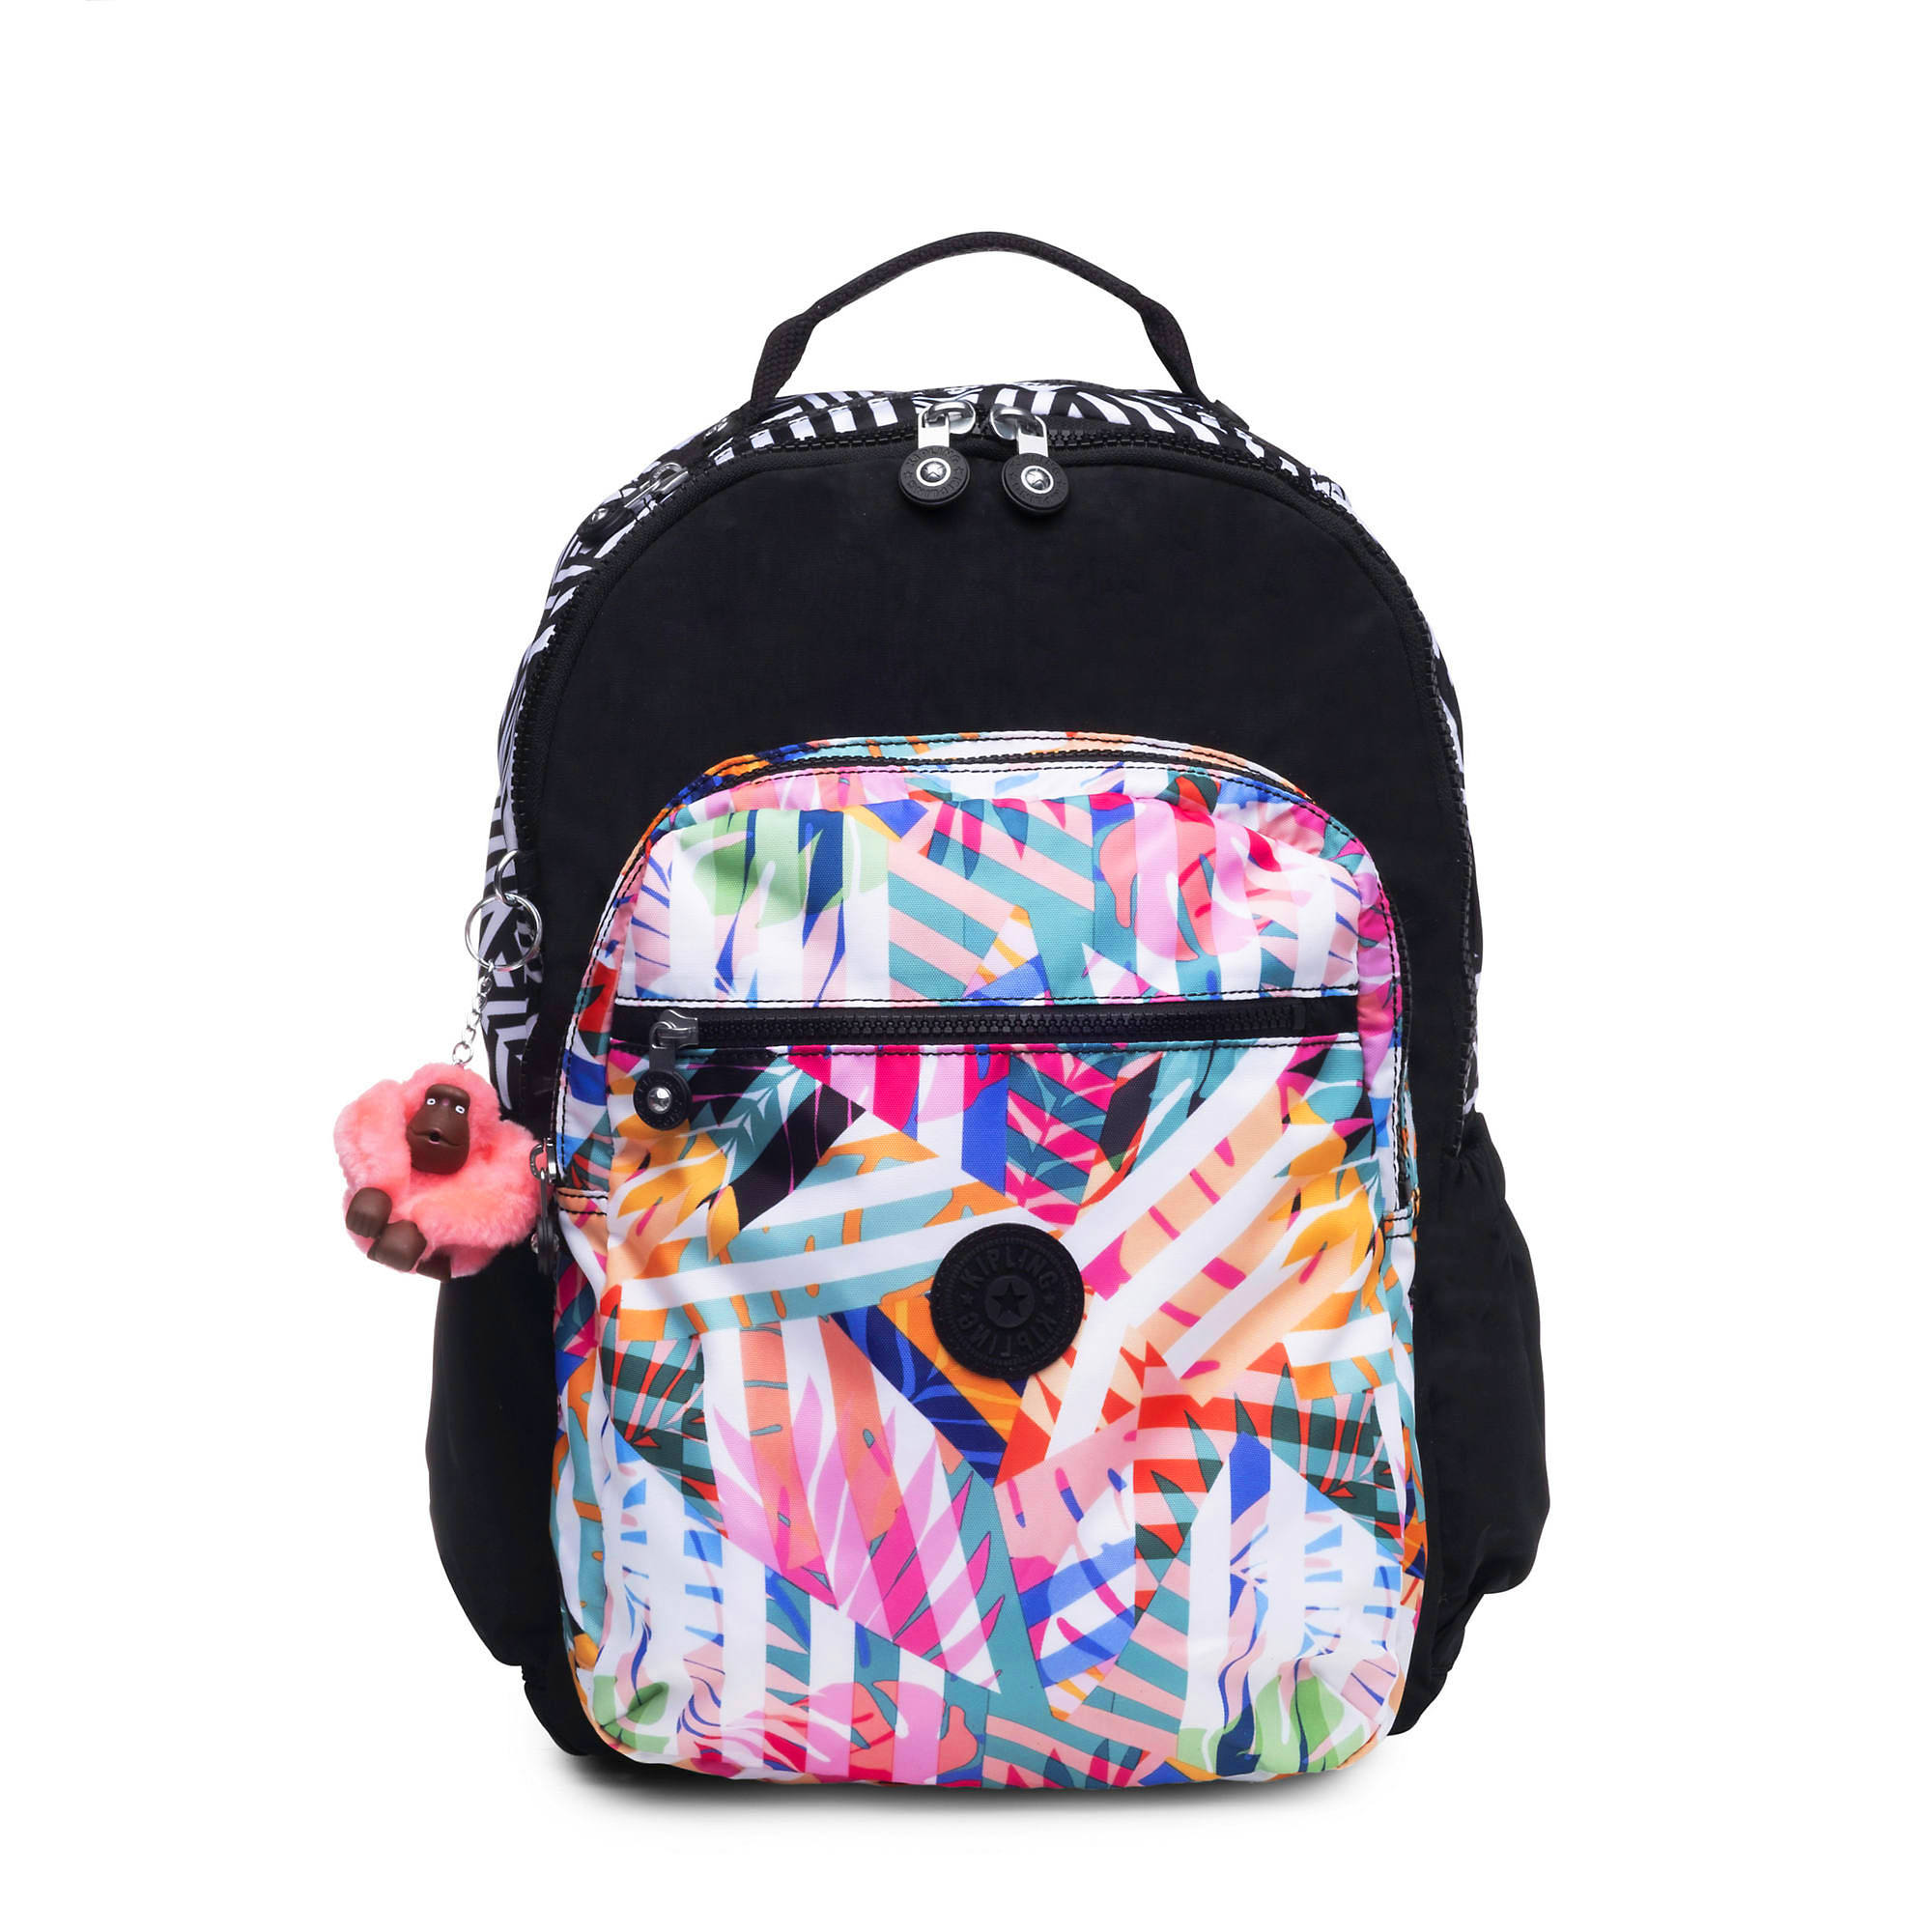 472ef17094 Seoul Go Large Printed Laptop Backpack,Black Print Combo,large